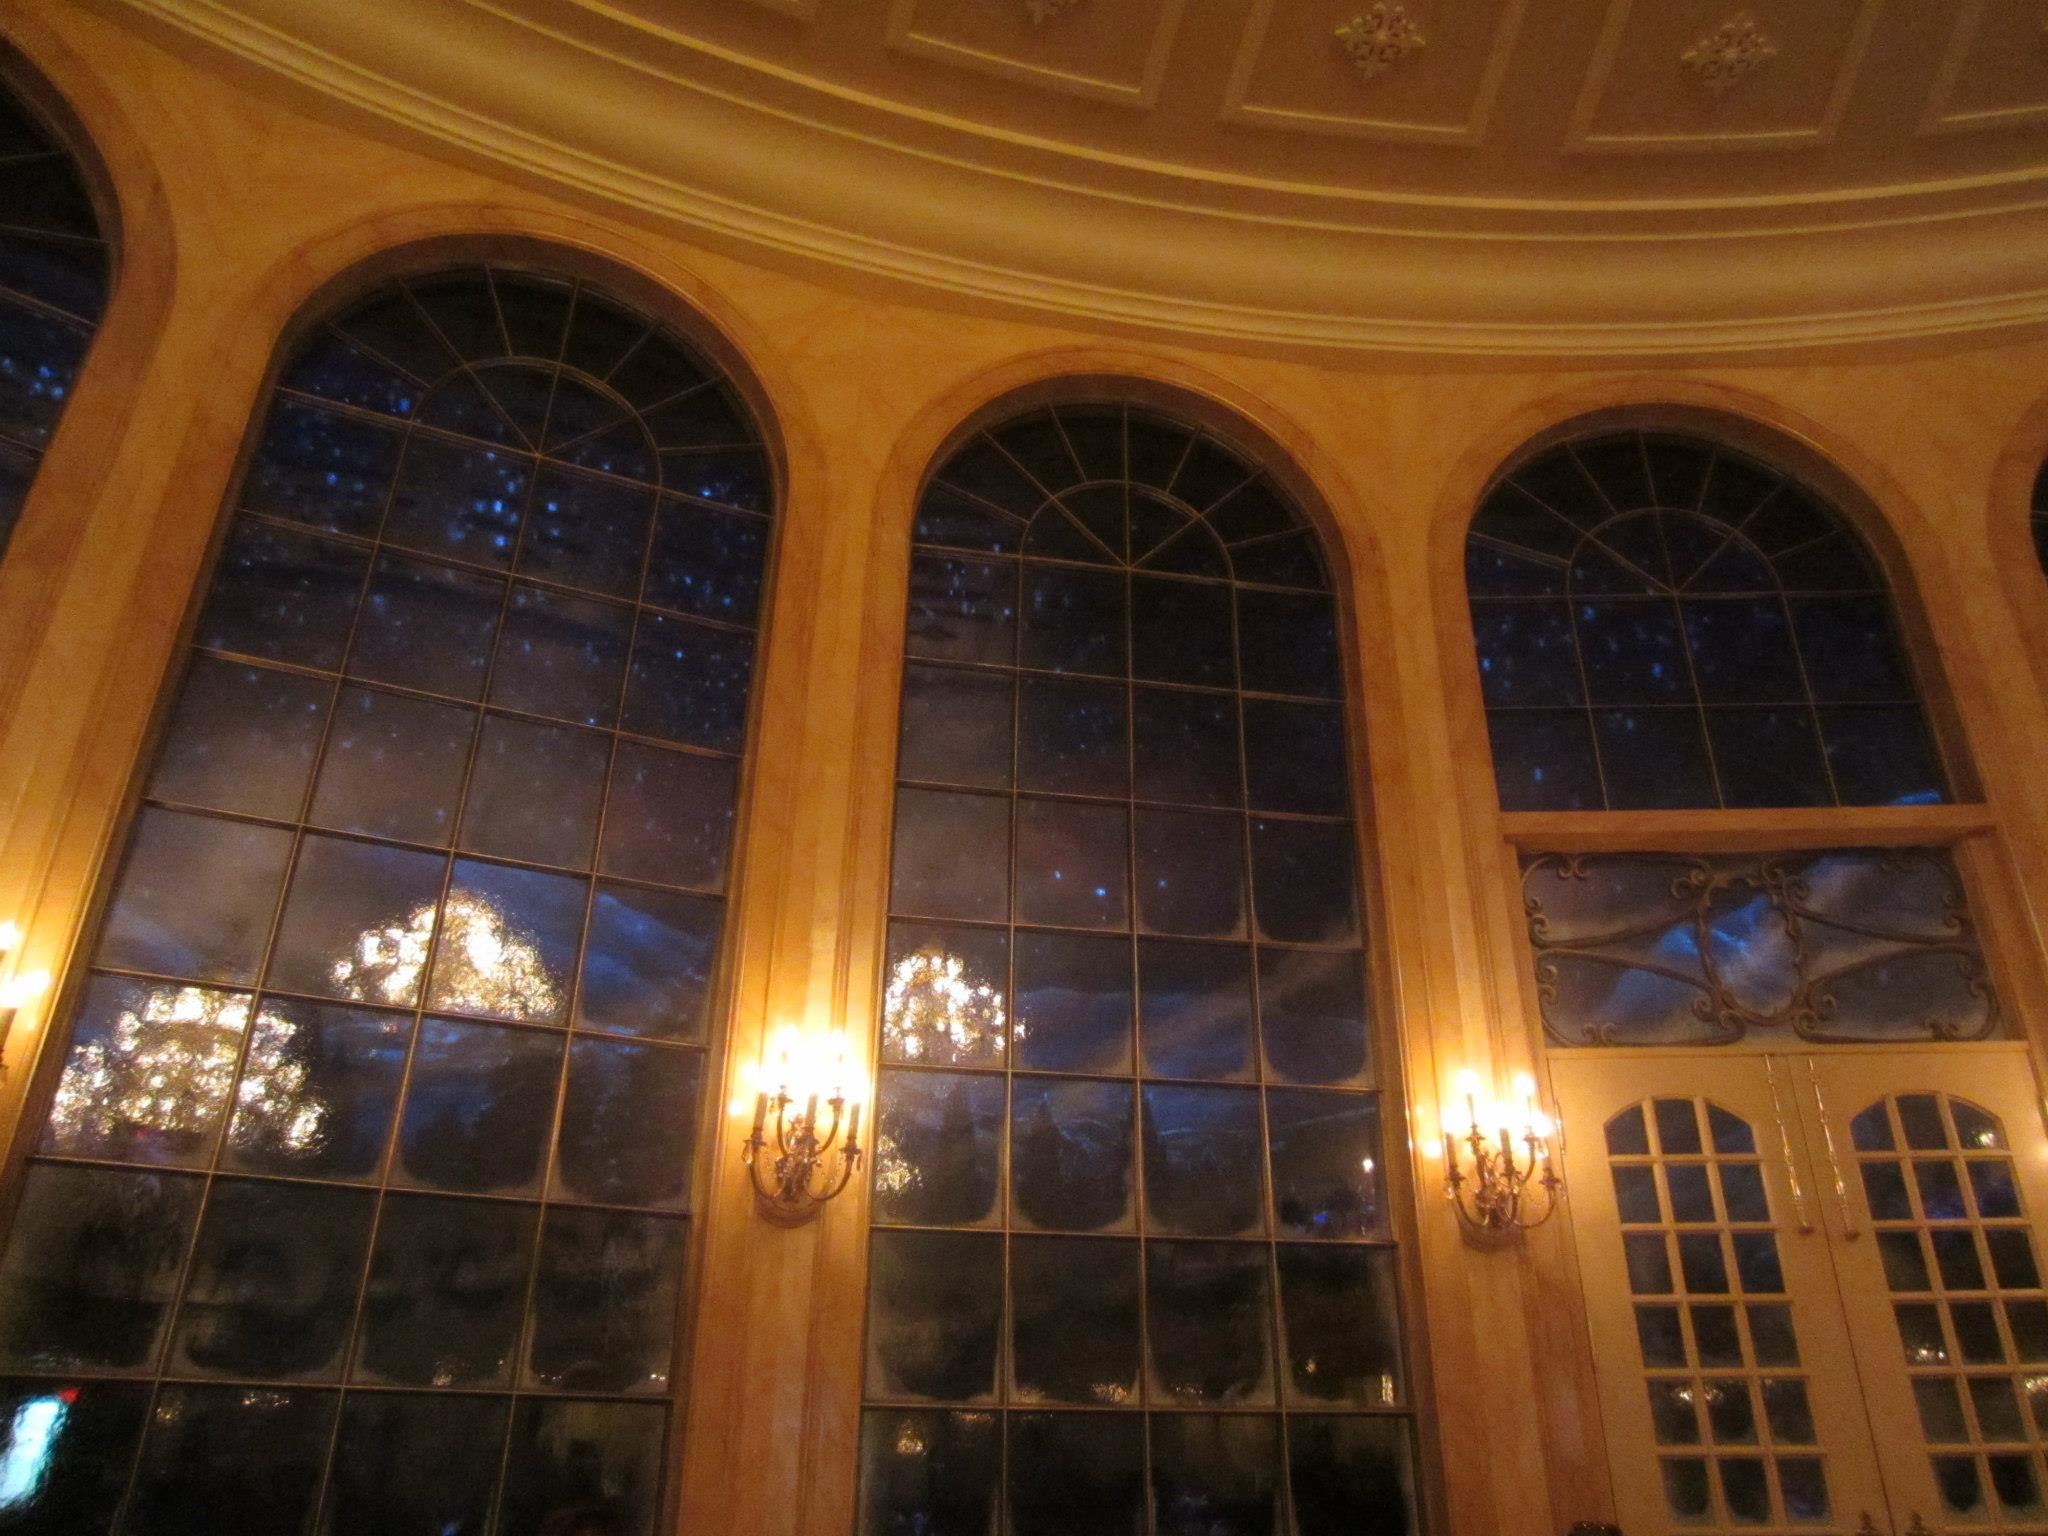 It Snows Outside The Giant Windows At End Of Ballroom Which Is Very Magical